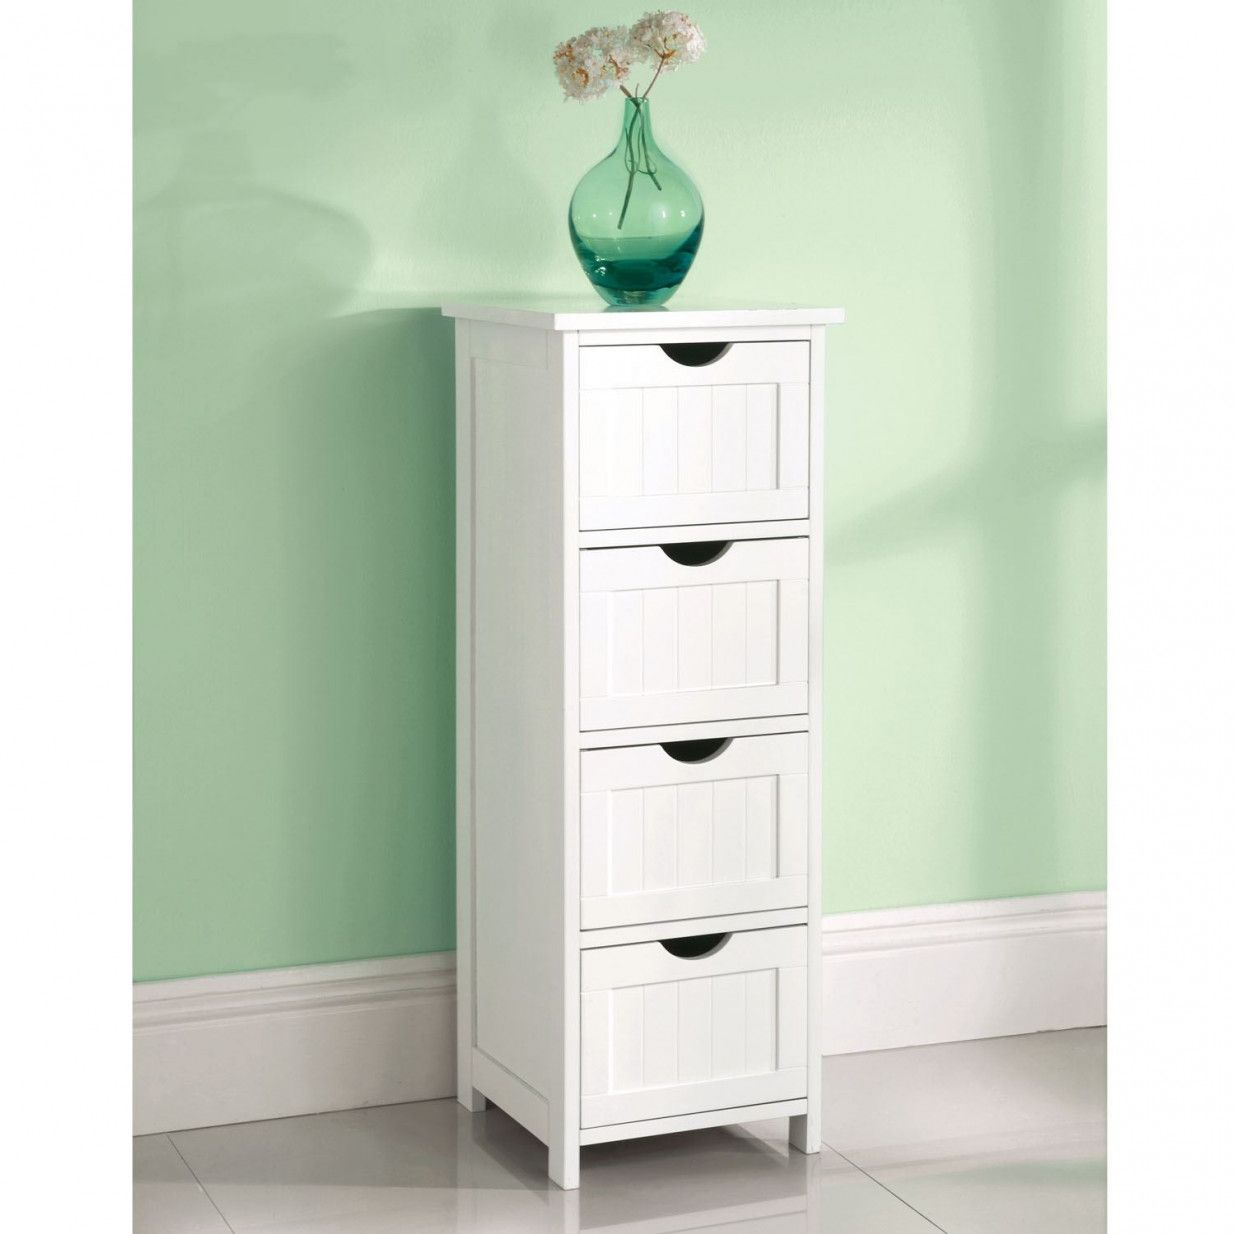 77+ White Wooden Bathroom Cabinets - Best Paint for Interior Check ...